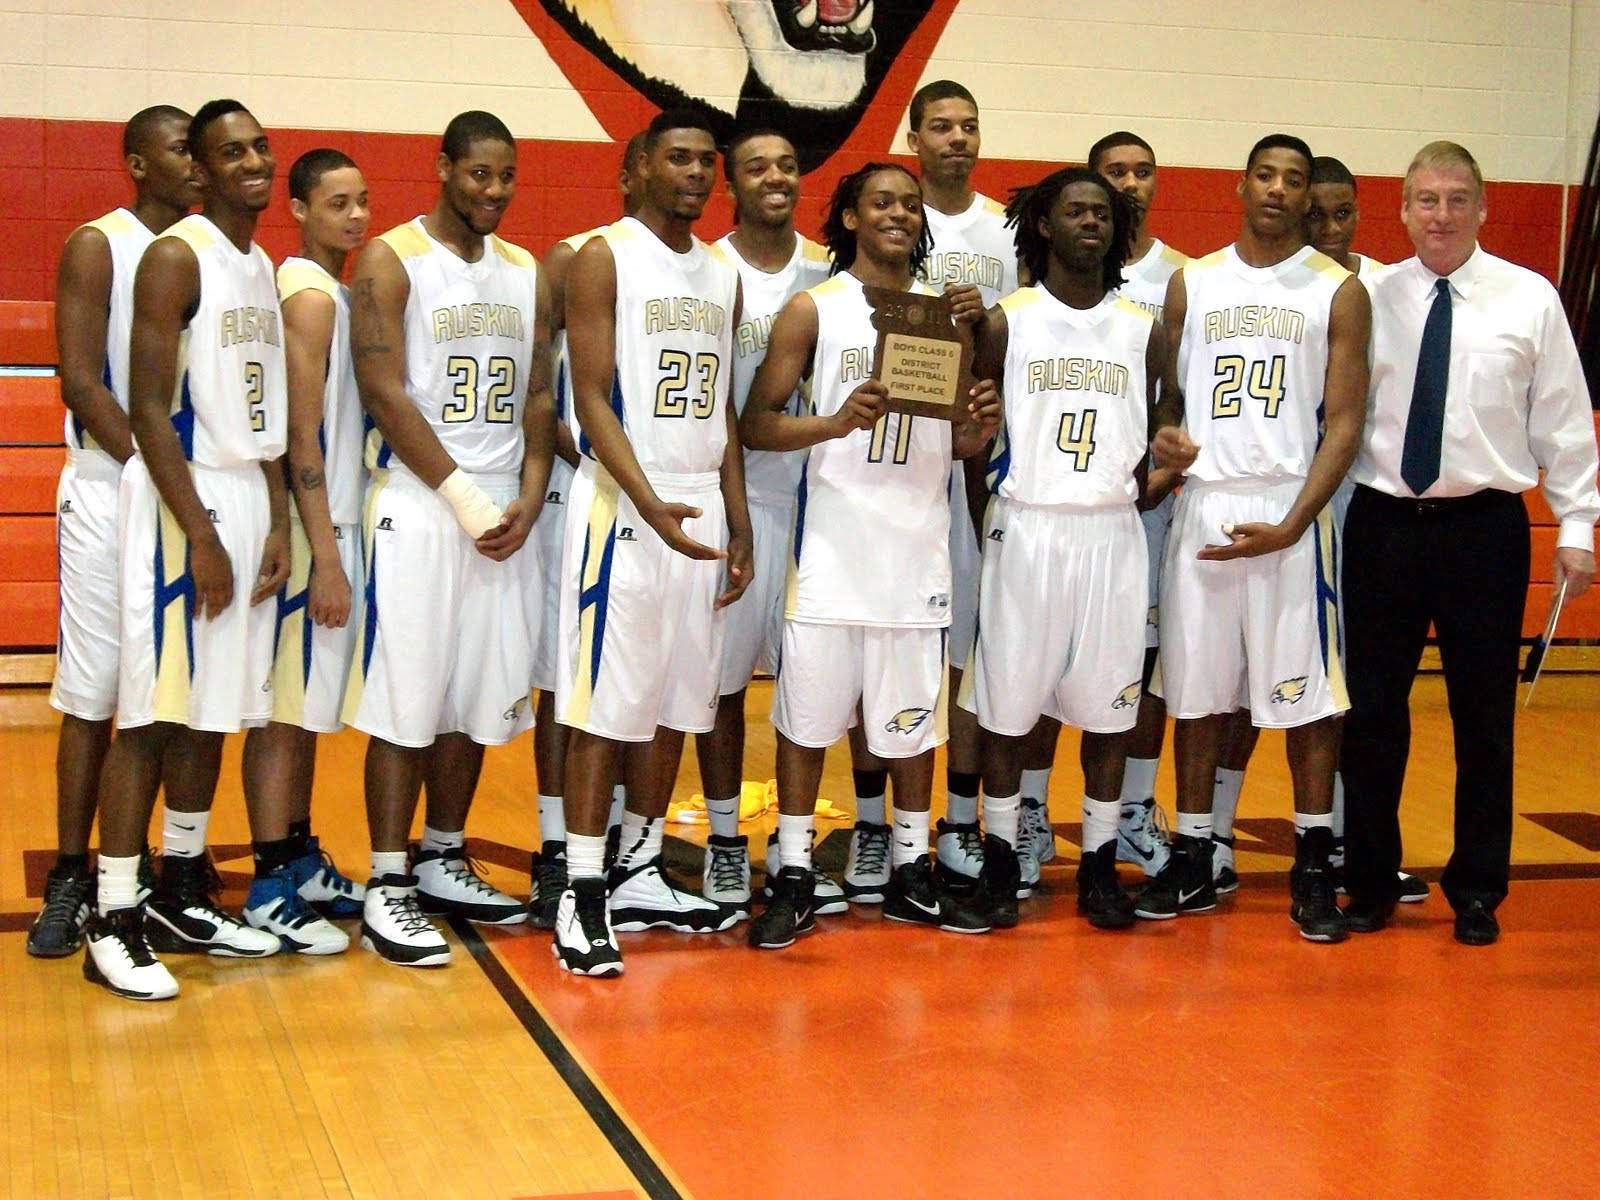 Ruskin High School Basketball